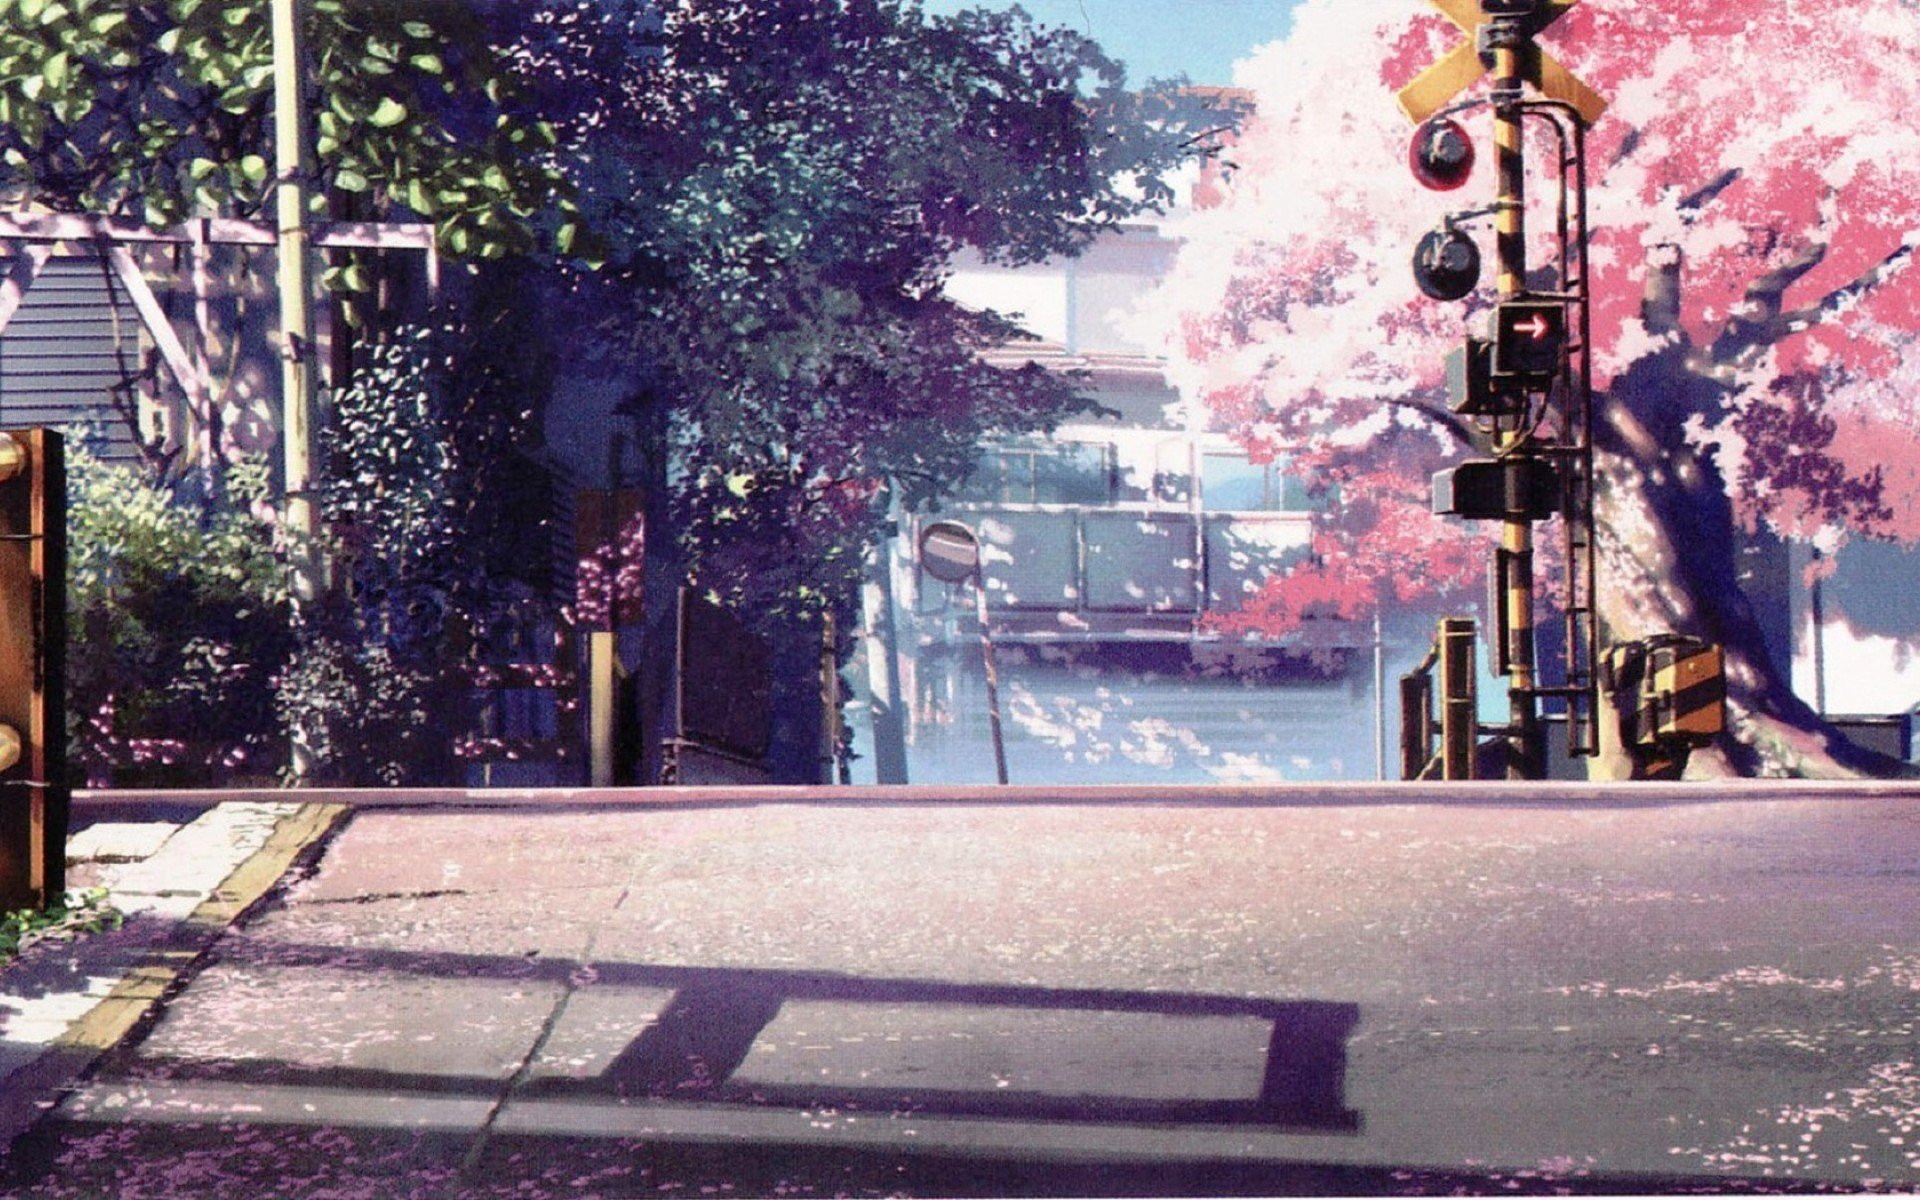 5 Centimeters Per Second Wallpapers Anime Hq 5 Centimeters Per